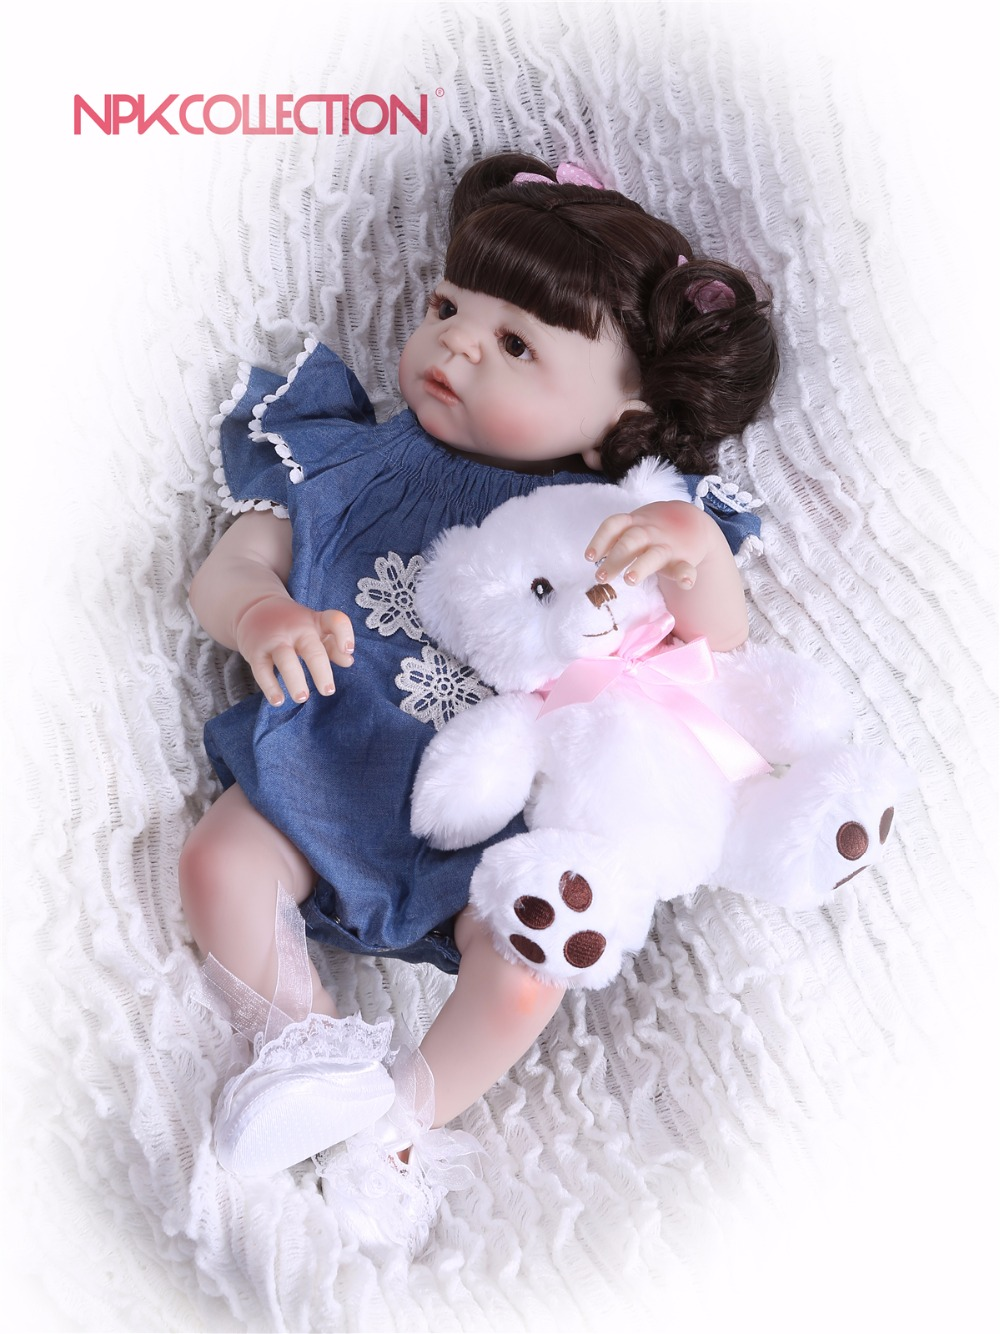 NPKCOLLECTION New Hairstyle Girl Doll Full Silicone Body Lifelike Bebe Reborn Princess Girl Doll Handmade Baby Toy Kids Gifts new arrival 23 57cm baby girl doll full silicone body lifelike bebe reborn bonecas handmade baby toy for kids christmas gifts